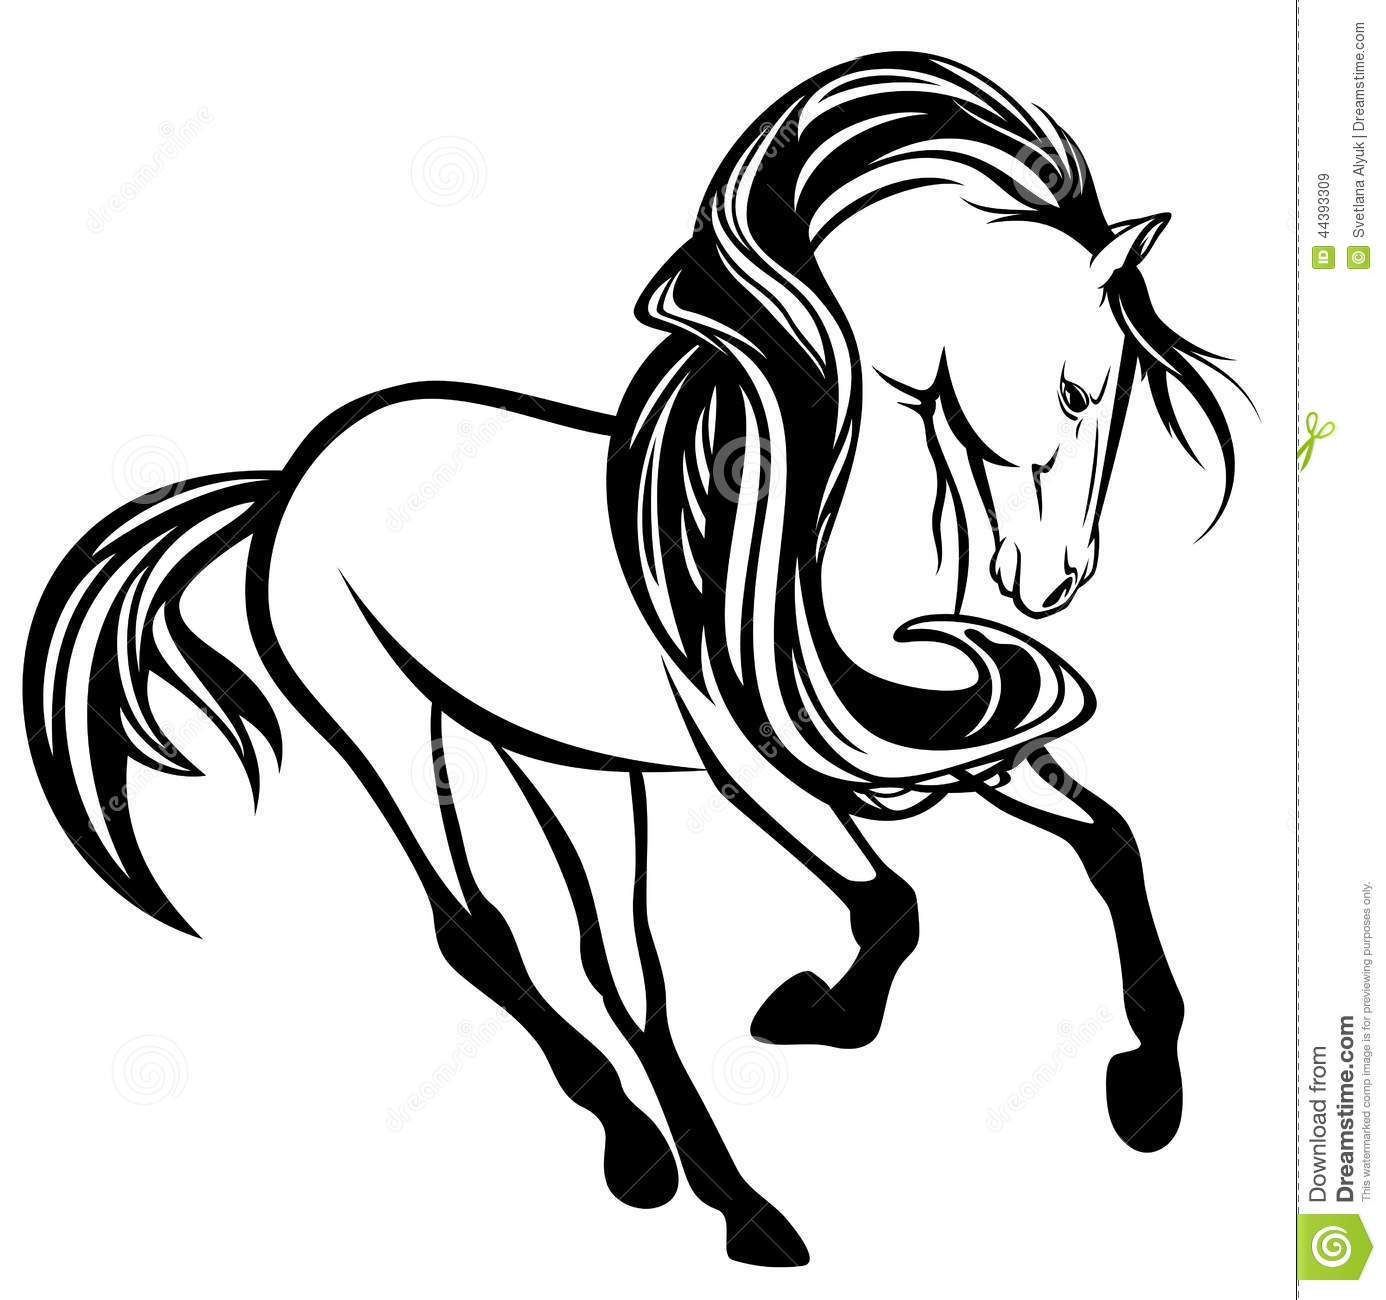 Wall Stickers How To Apply Horse Running Stock Vector Illustration Of Beautiful